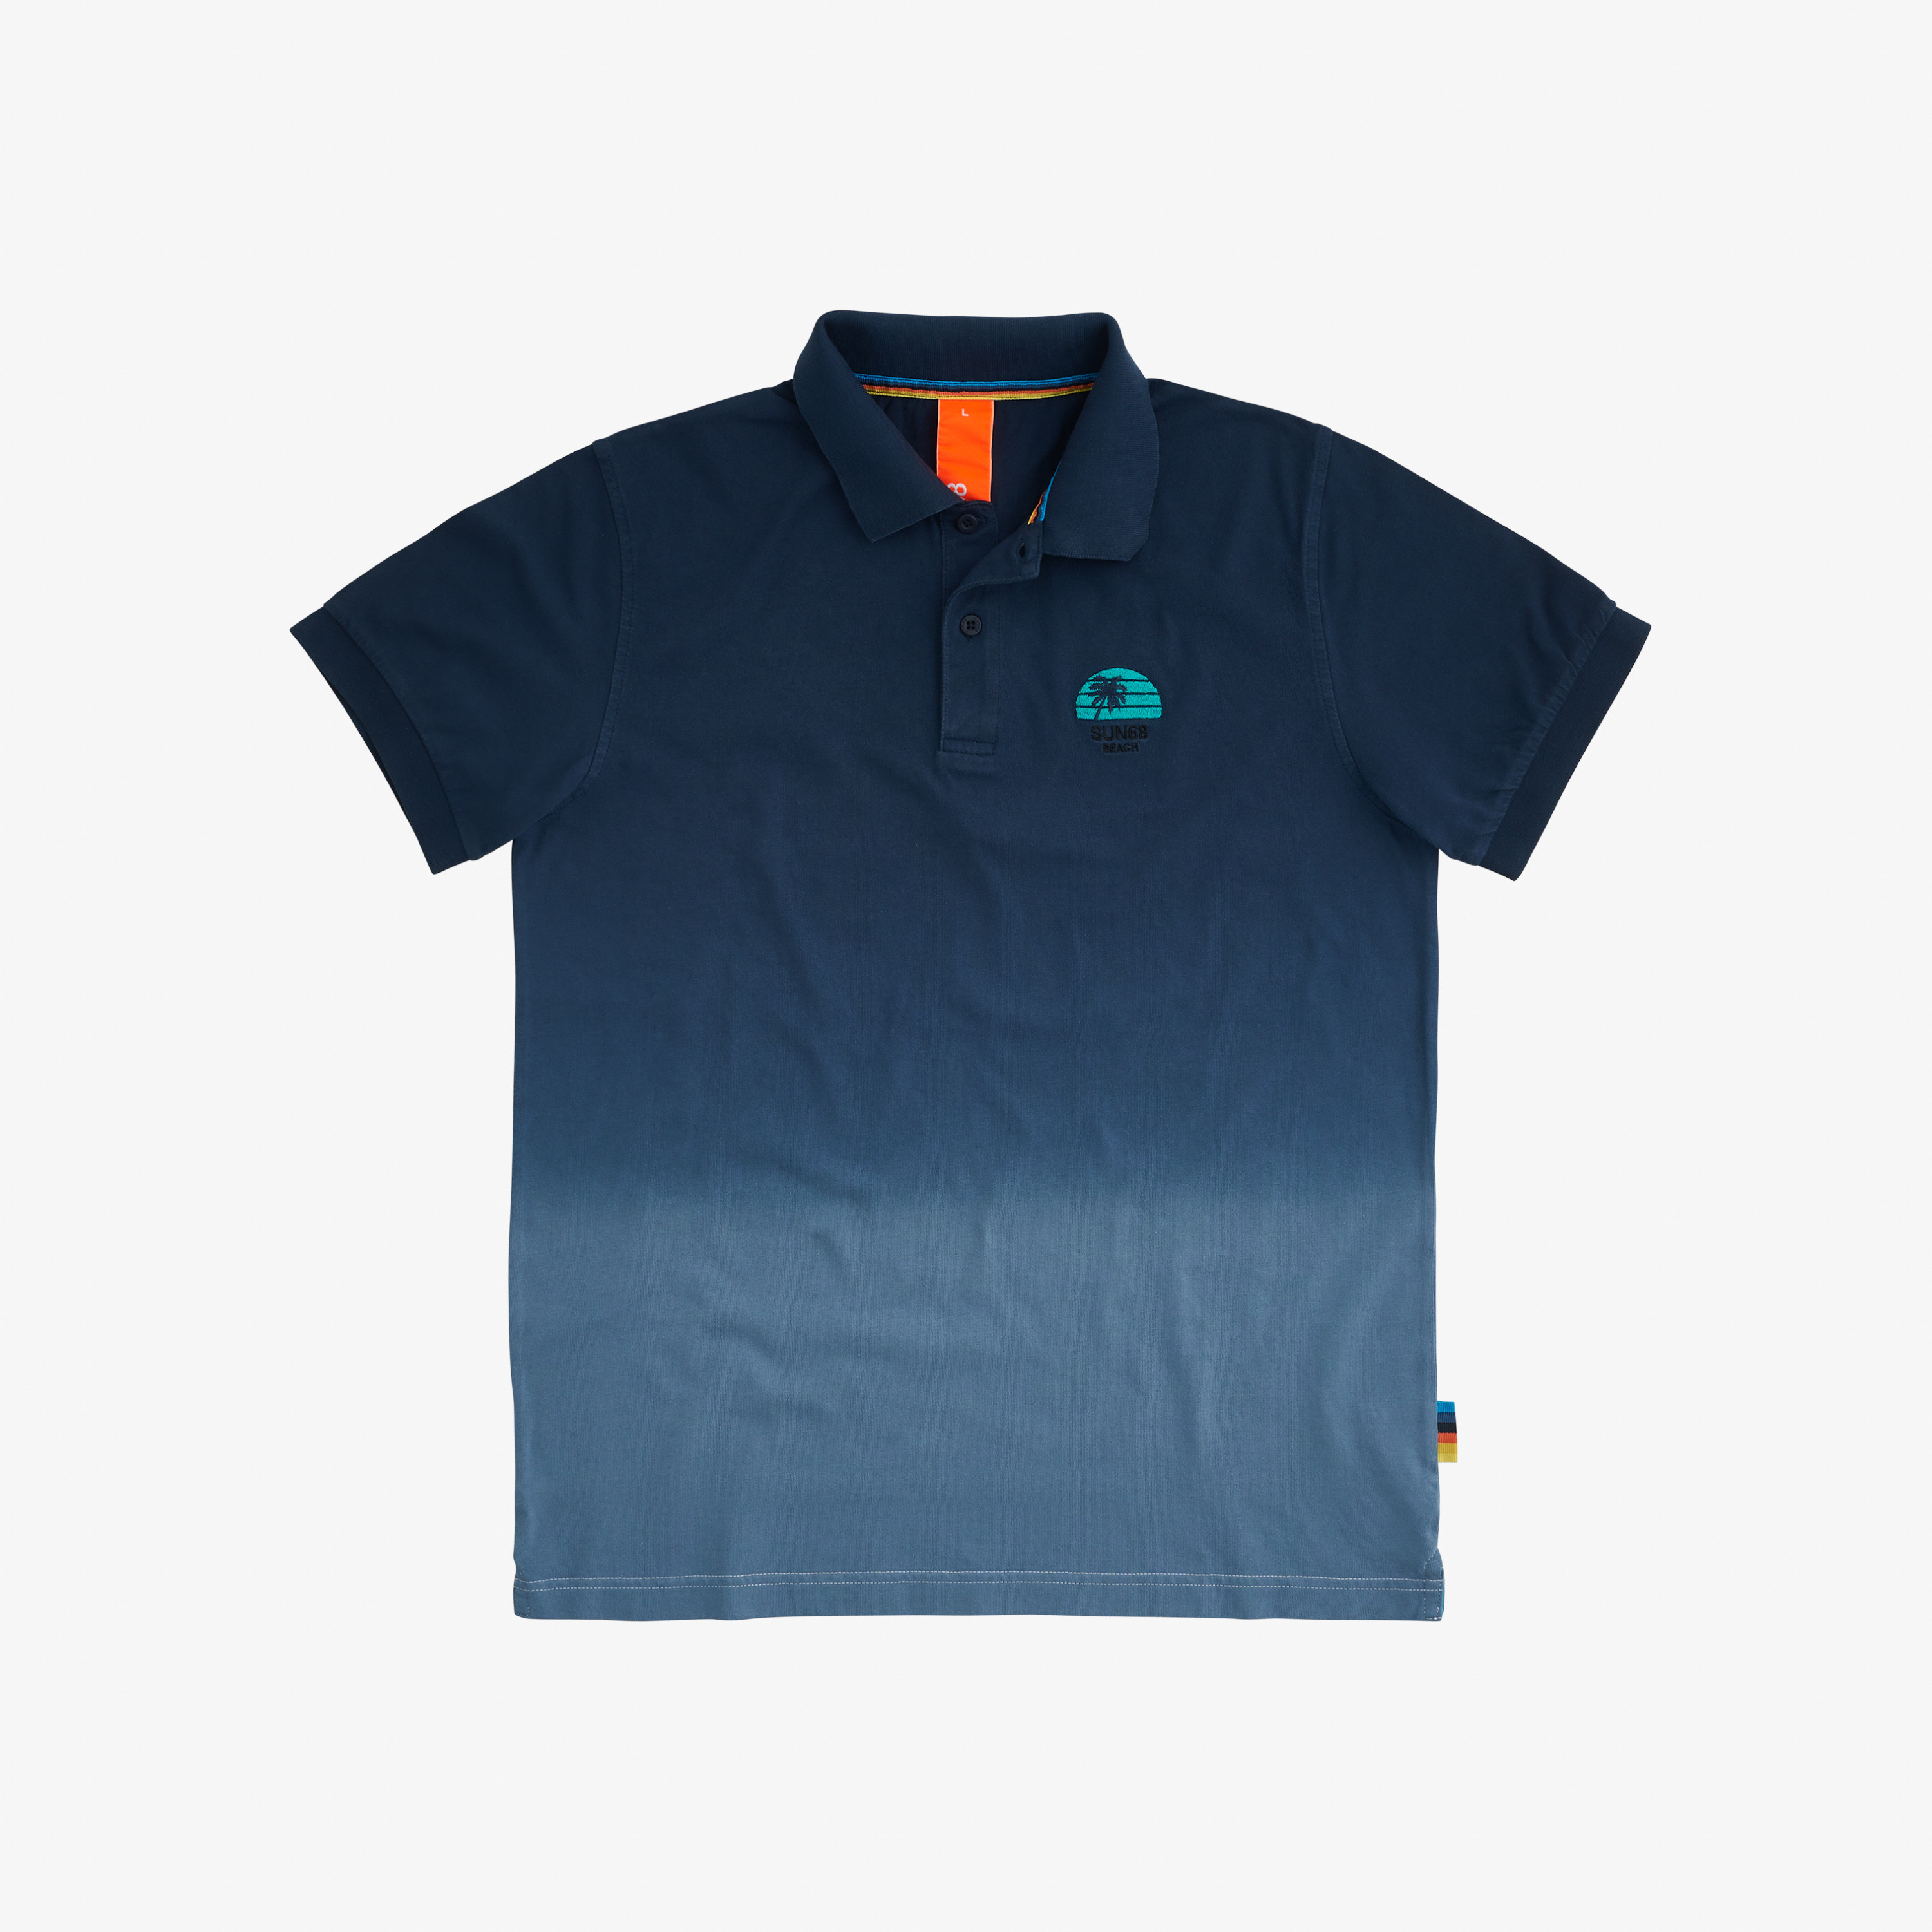 POLO HANG DYED NAVY BLUE